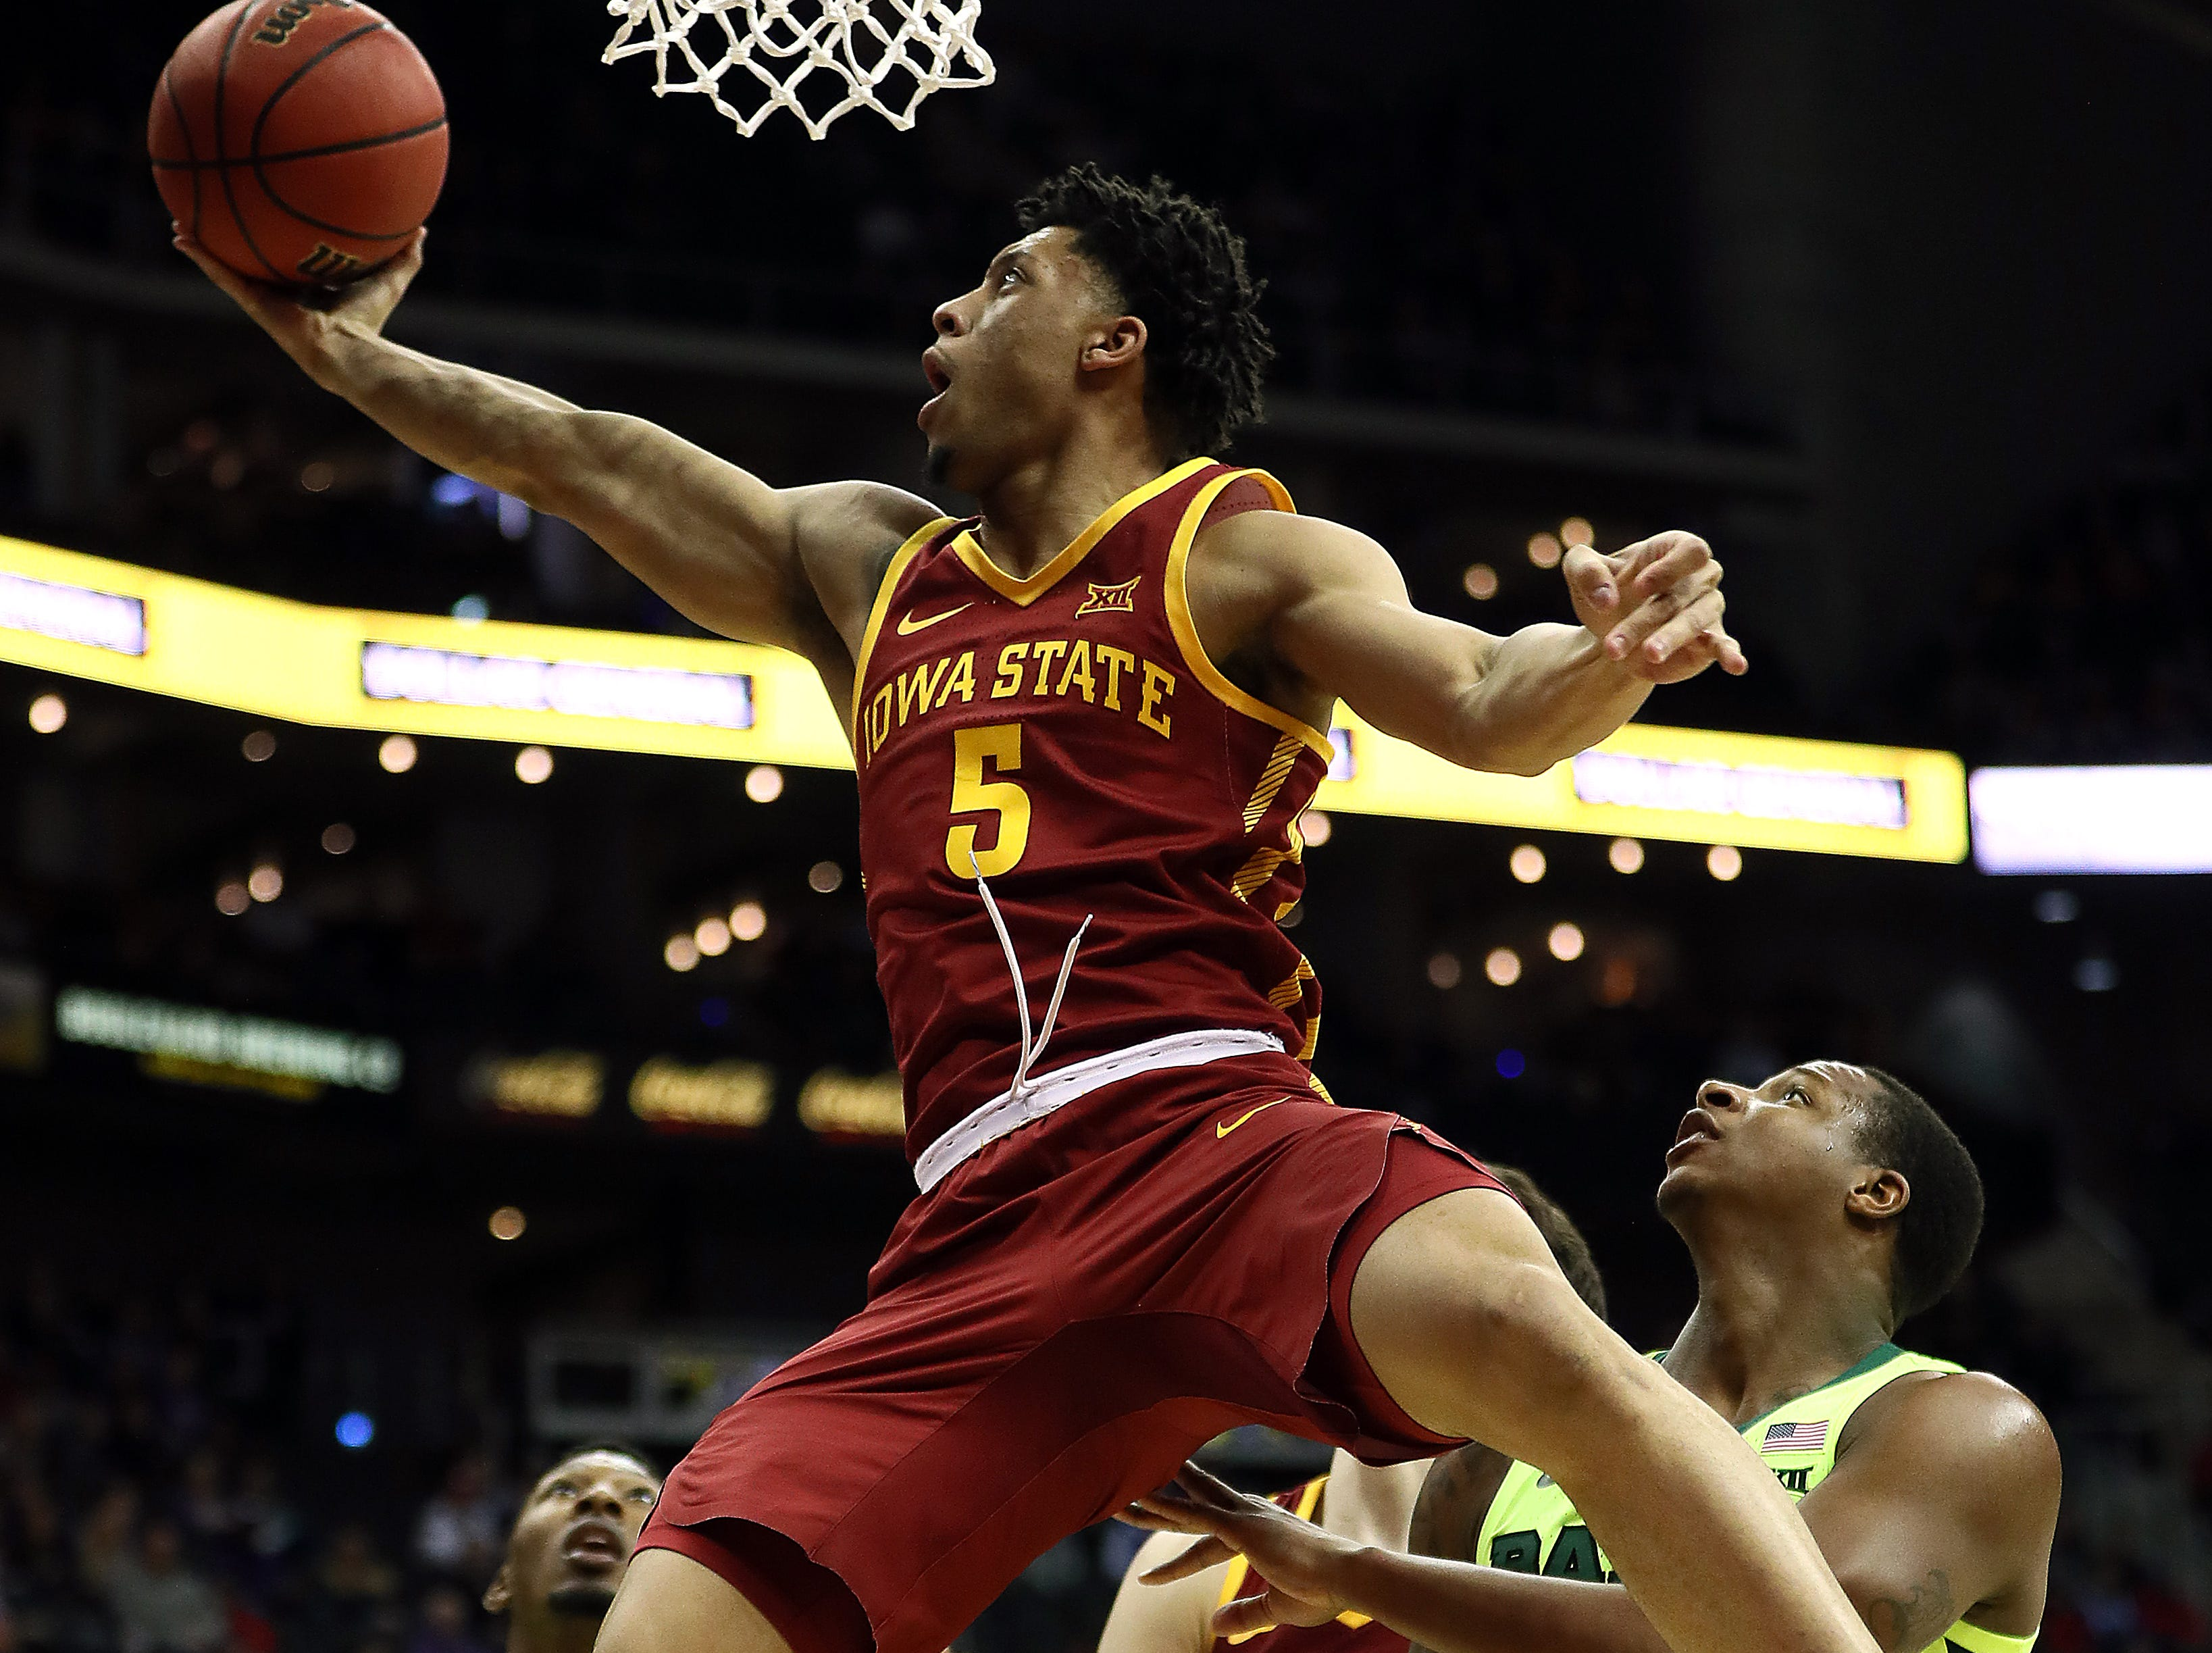 KANSAS CITY, MISSOURI - MARCH 14:  Lindell Wigginton #5 of the Iowa State Cyclones drives toward the basket during the quarterfinal game of the Big 12 Basketball Tournament against the Baylor Bears at Sprint Center on March 14, 2019 in Kansas City, Missouri. (Photo by Jamie Squire/Getty Images)